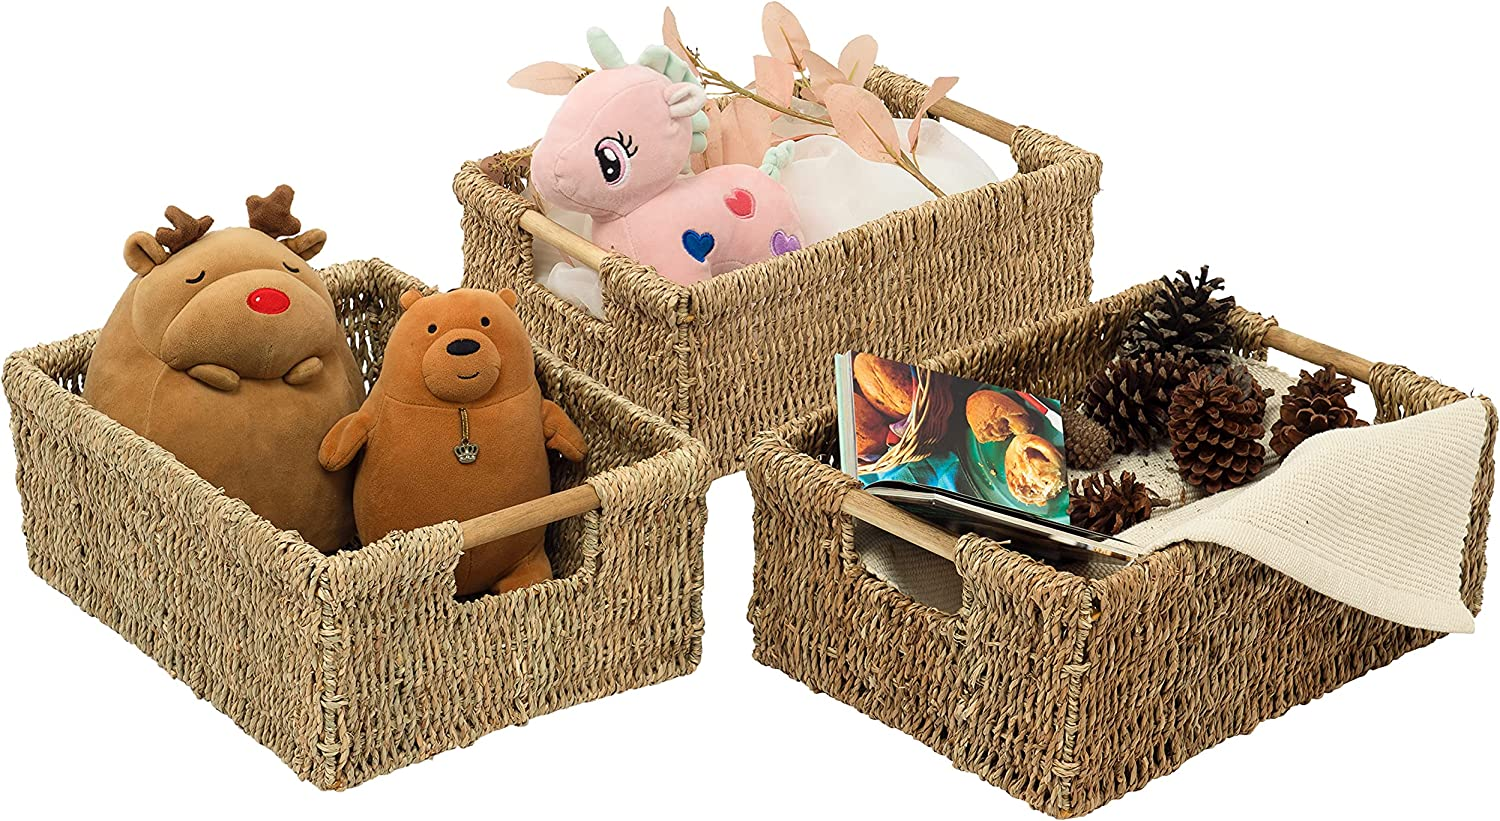 VATIMA Mail order Large Don't miss the campaign Wicker Basket Rectangular Wooden Handles Seag with